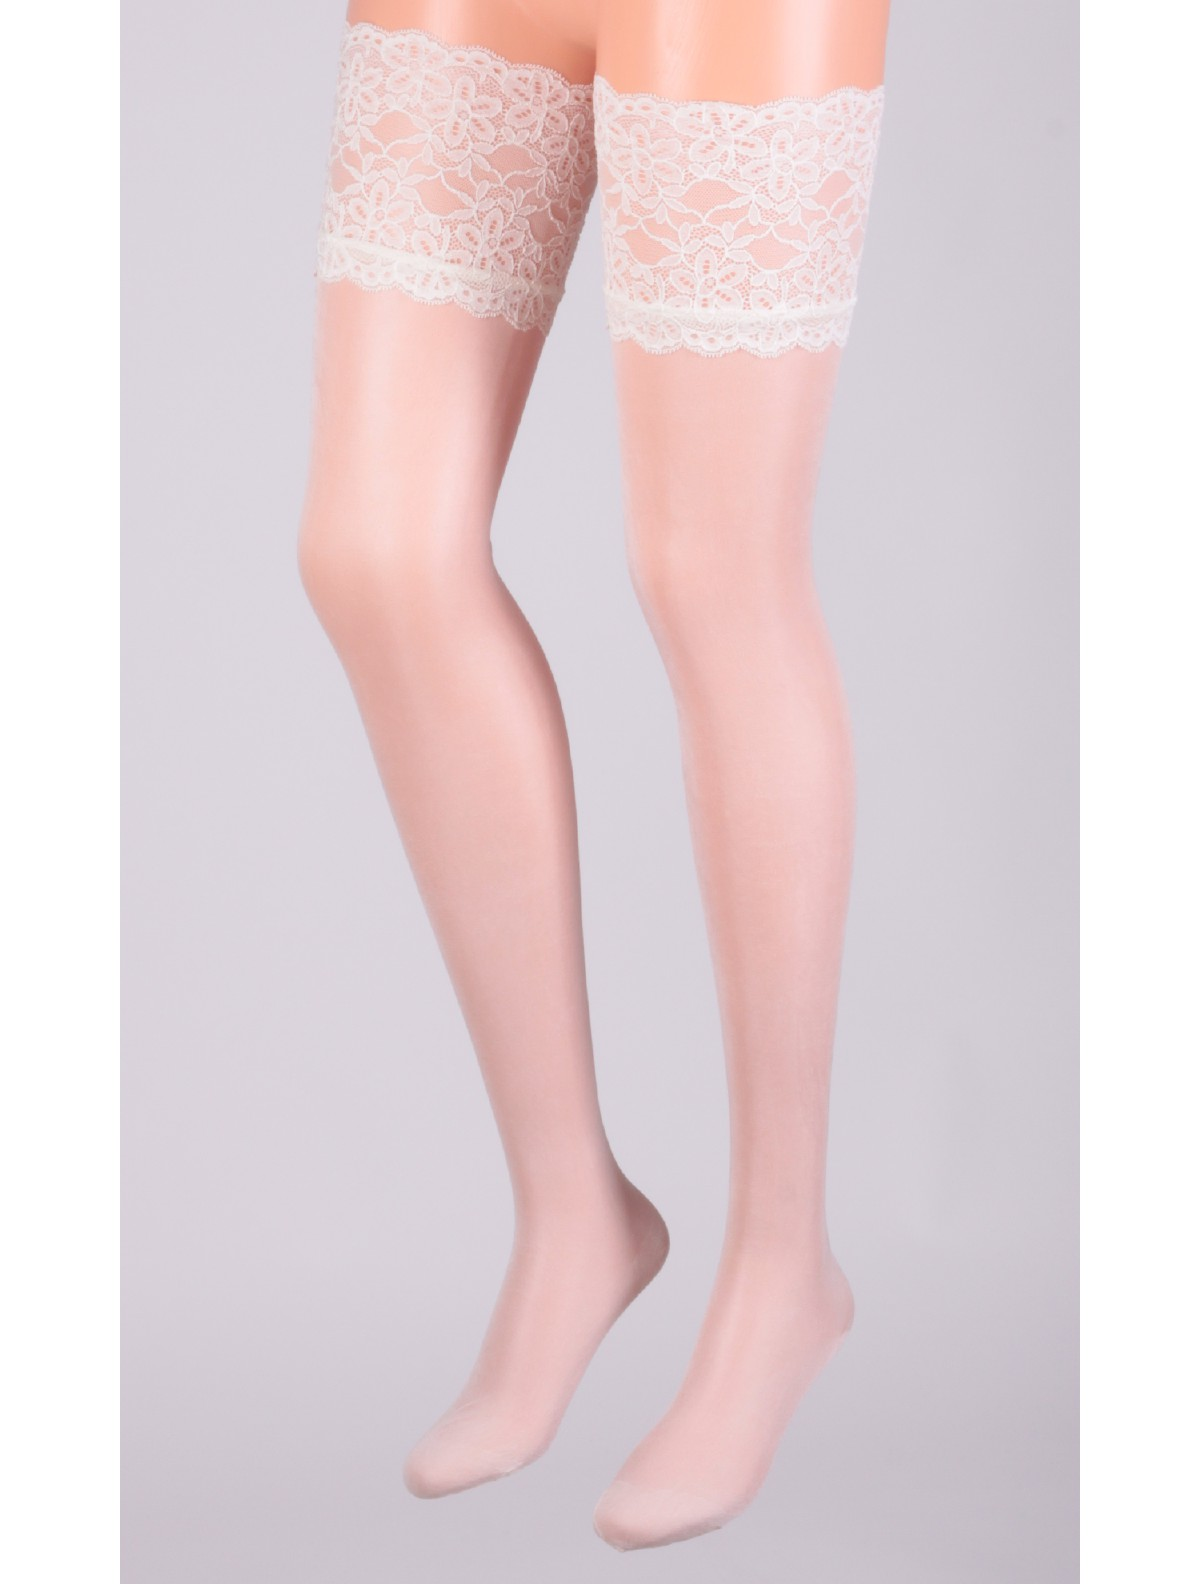 83533ab83 ... Cervin Rive Gauche Silk Hold-Ups ivory